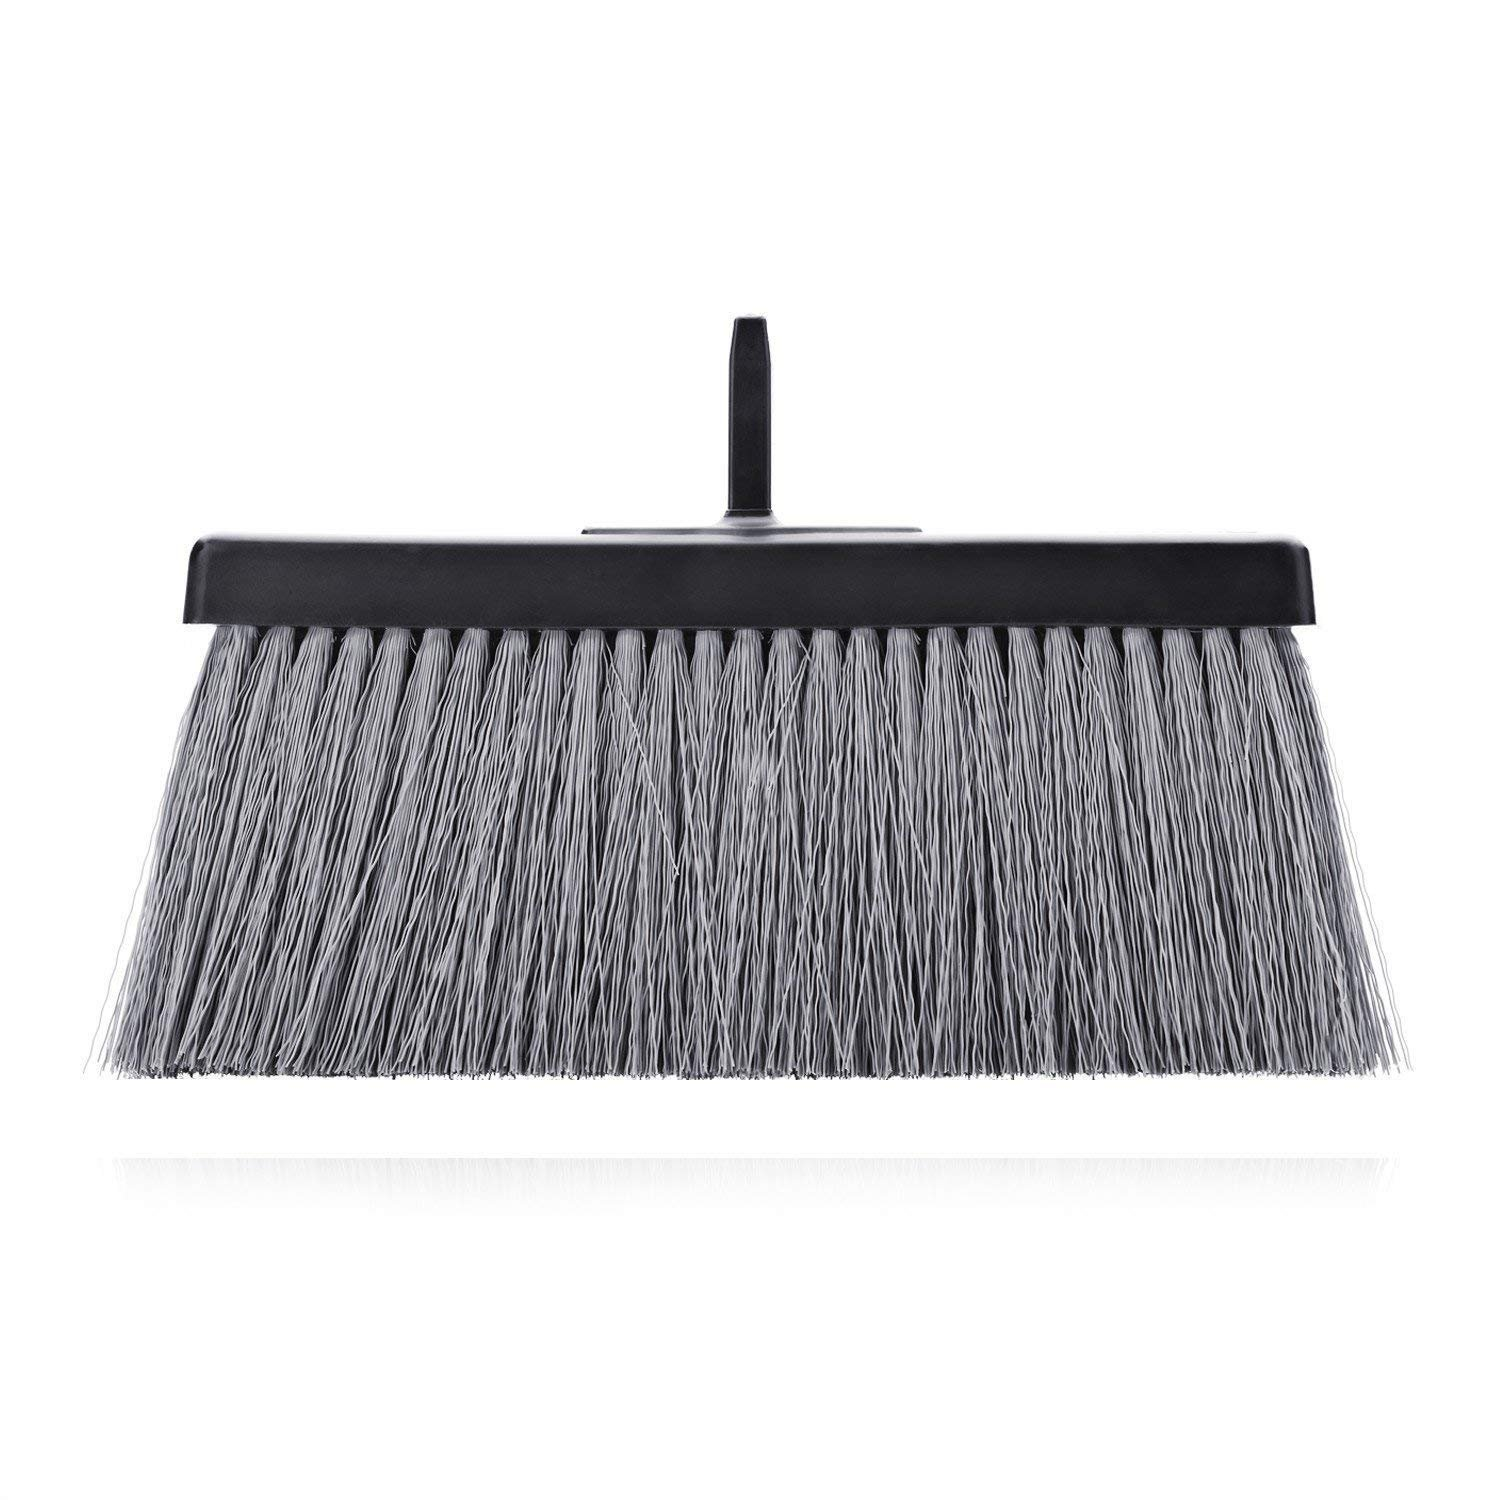 Stanley Home Products Broom Head (Black) Head Only A3083